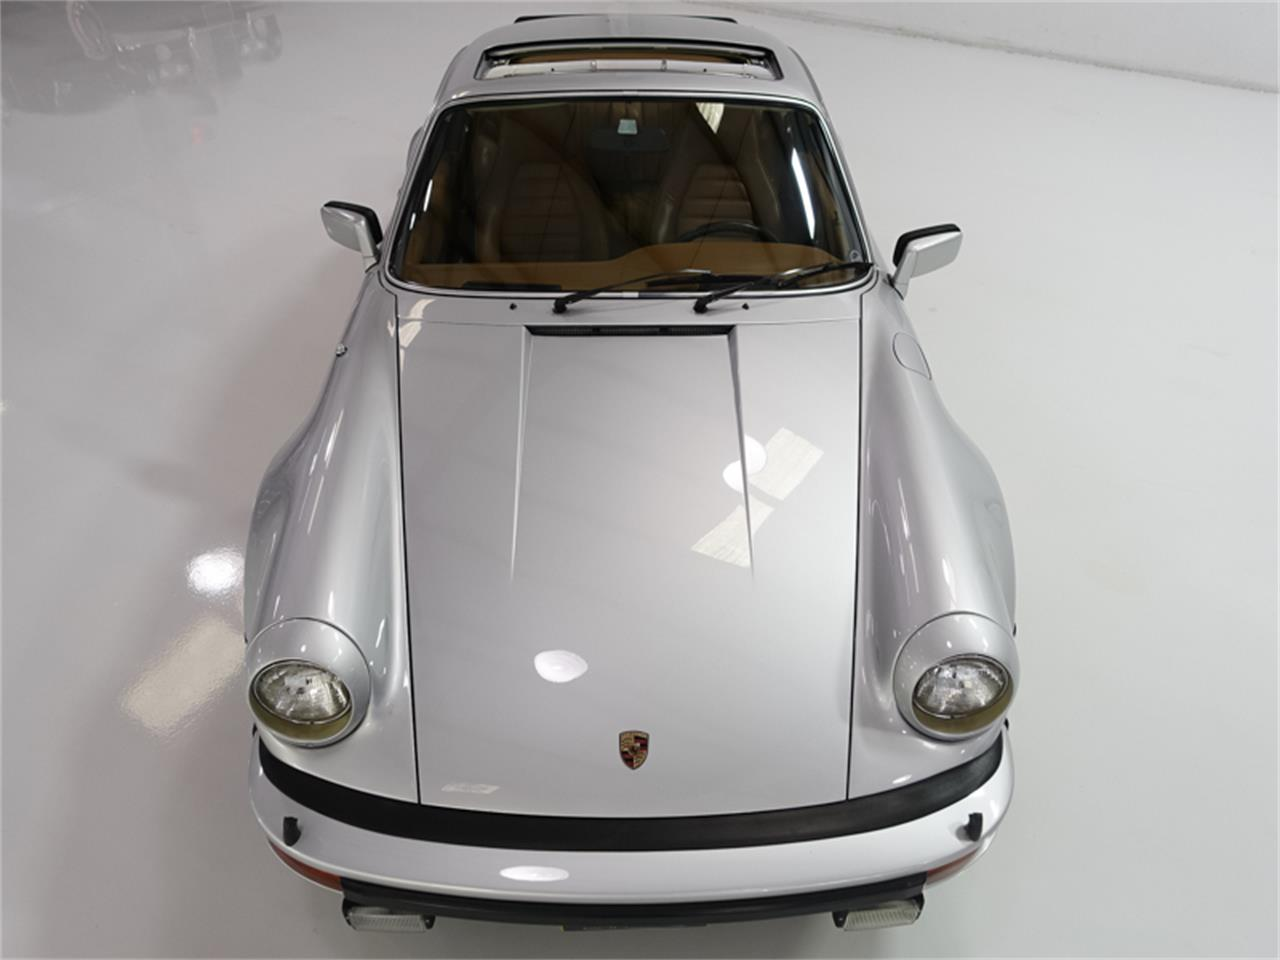 Large Picture of '76 930 Turbo - $229,900.00 Offered by Daniel Schmitt & Co. - FXKC